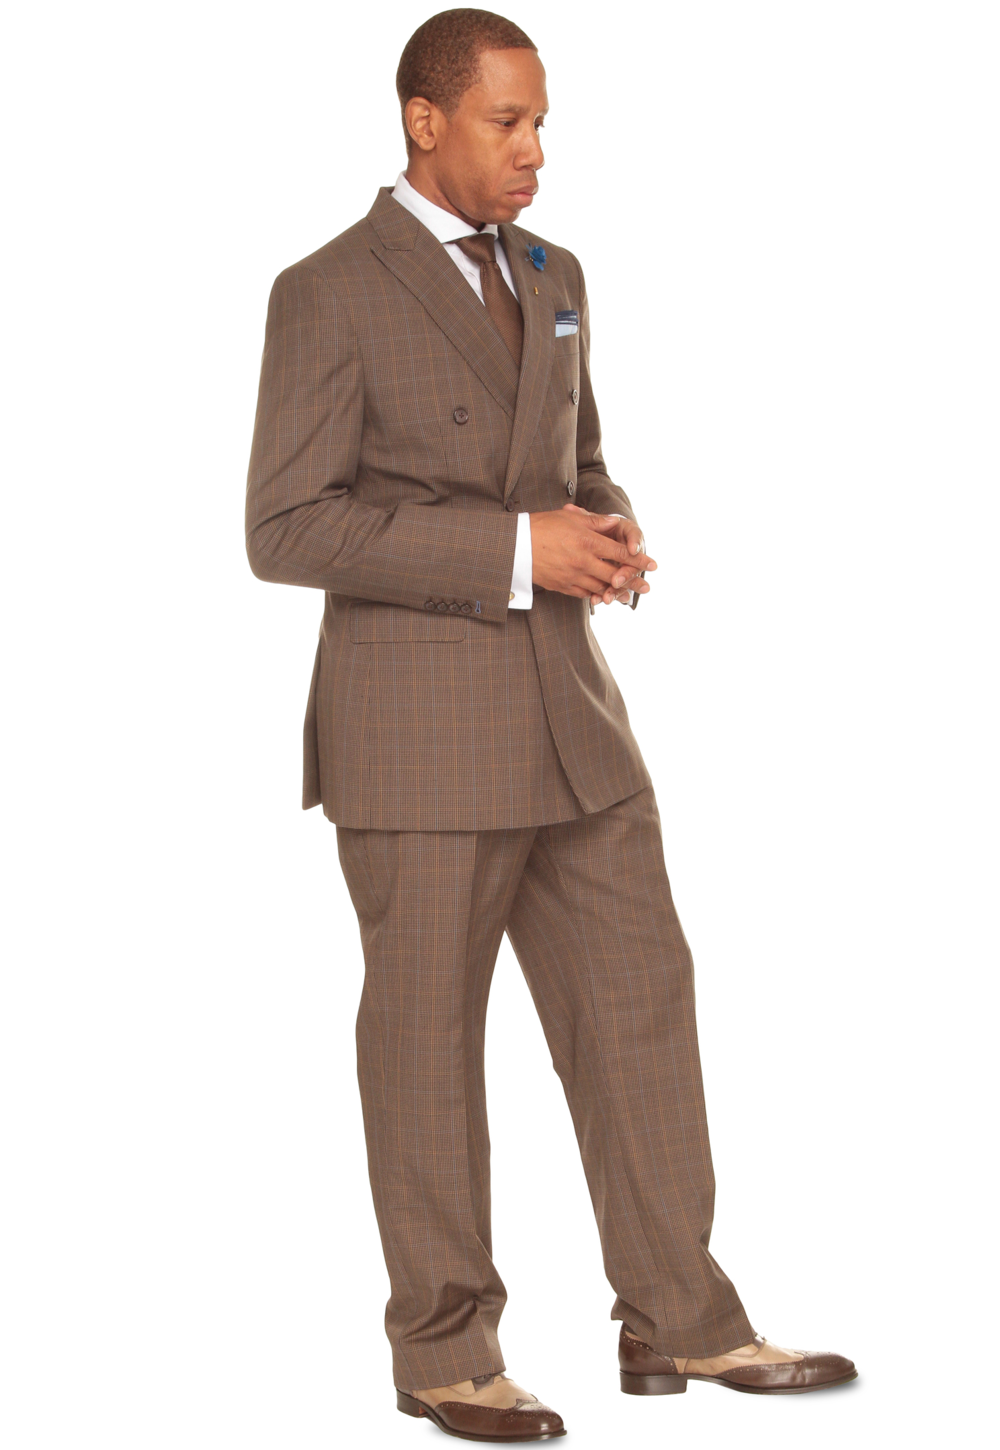 William Malcolm Luxe Collection Detroit Bespoke Custom Suit  www.WilliamMalcolmCollection.com